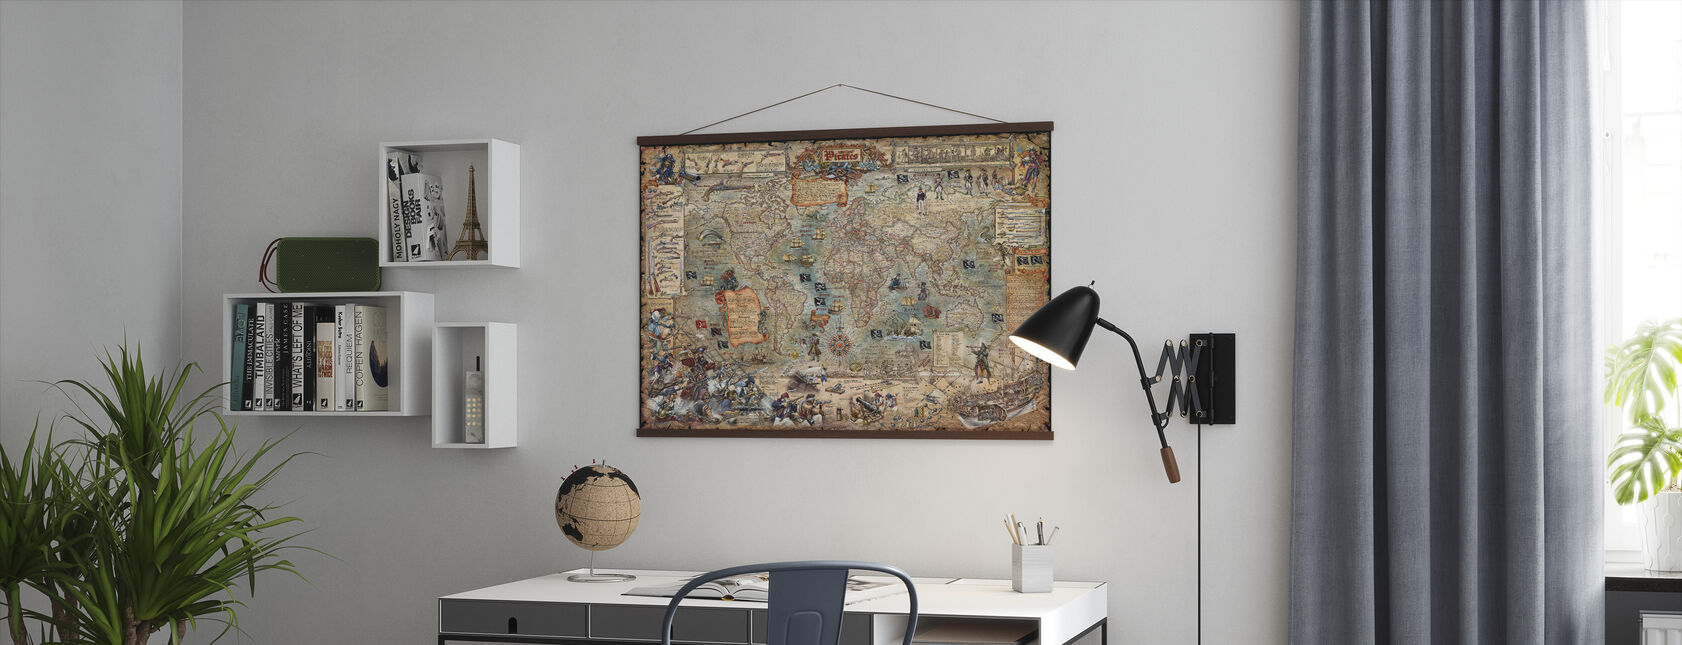 Pirate Map - Poster - Office